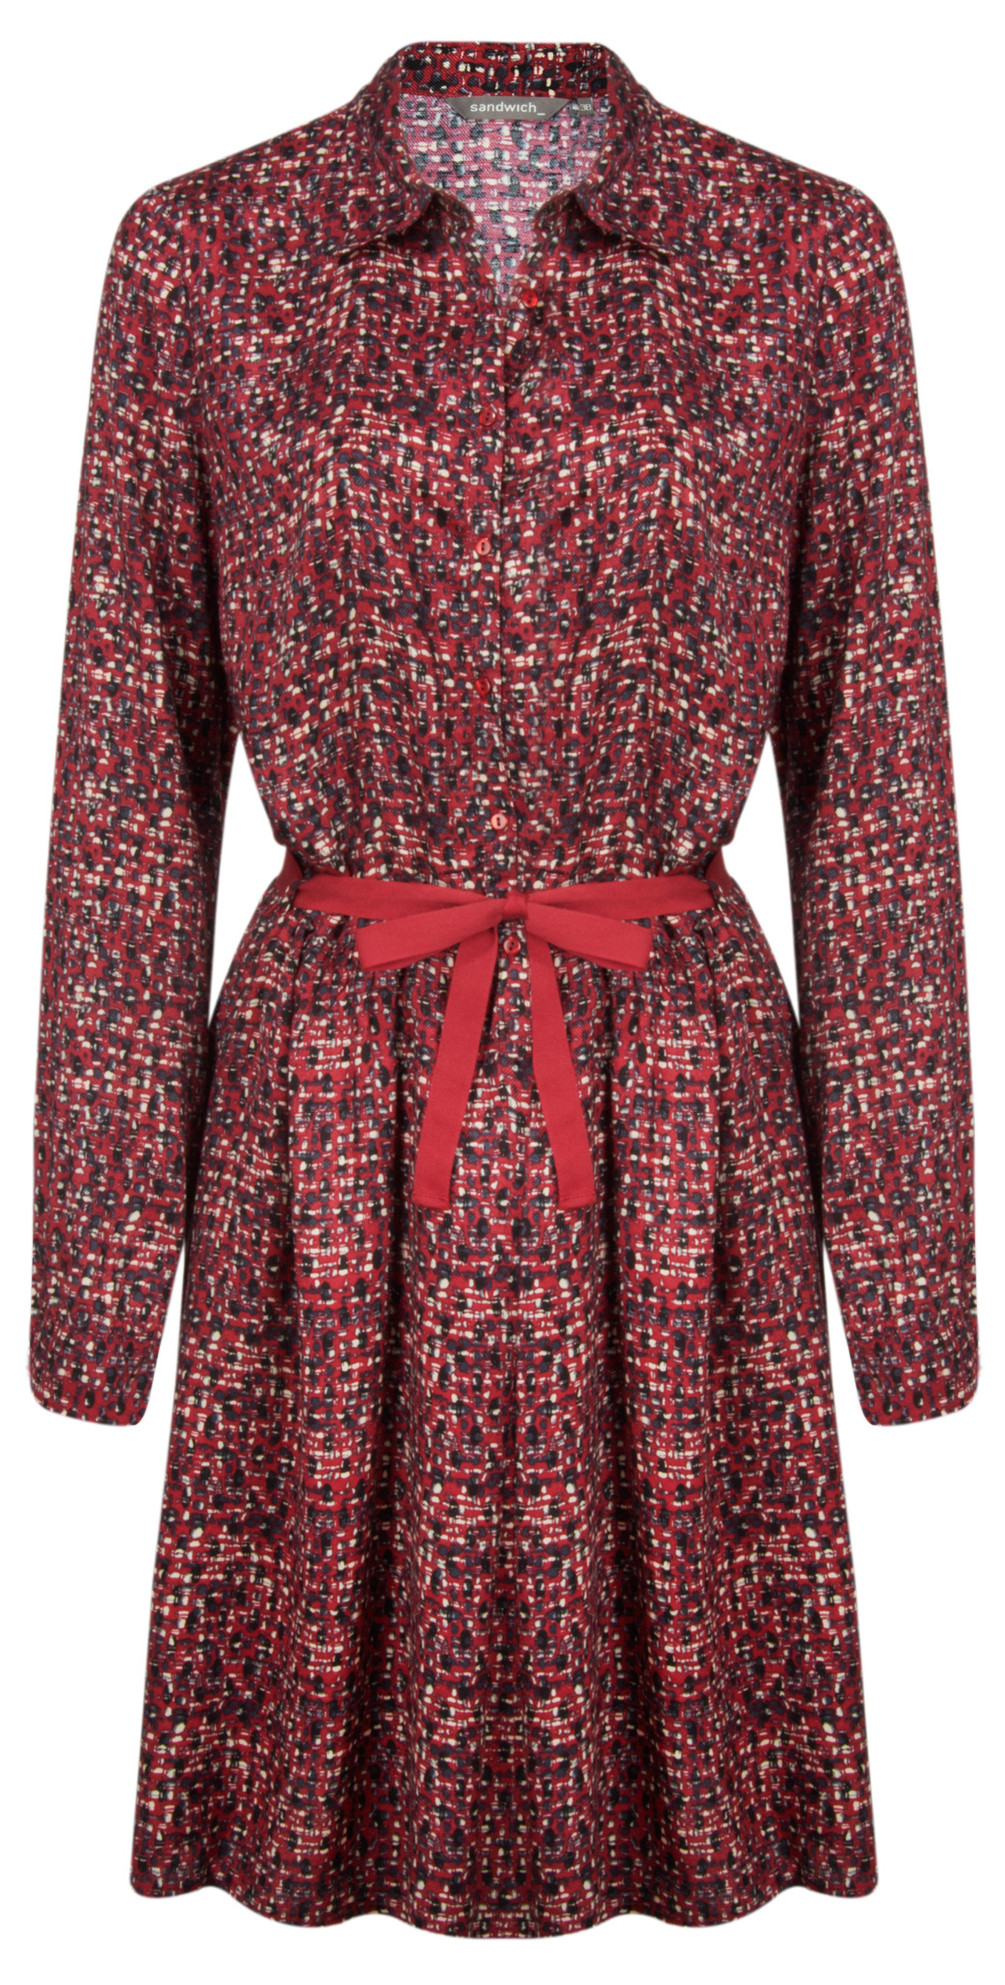 Long Sleeve Small Square Print Dress main image